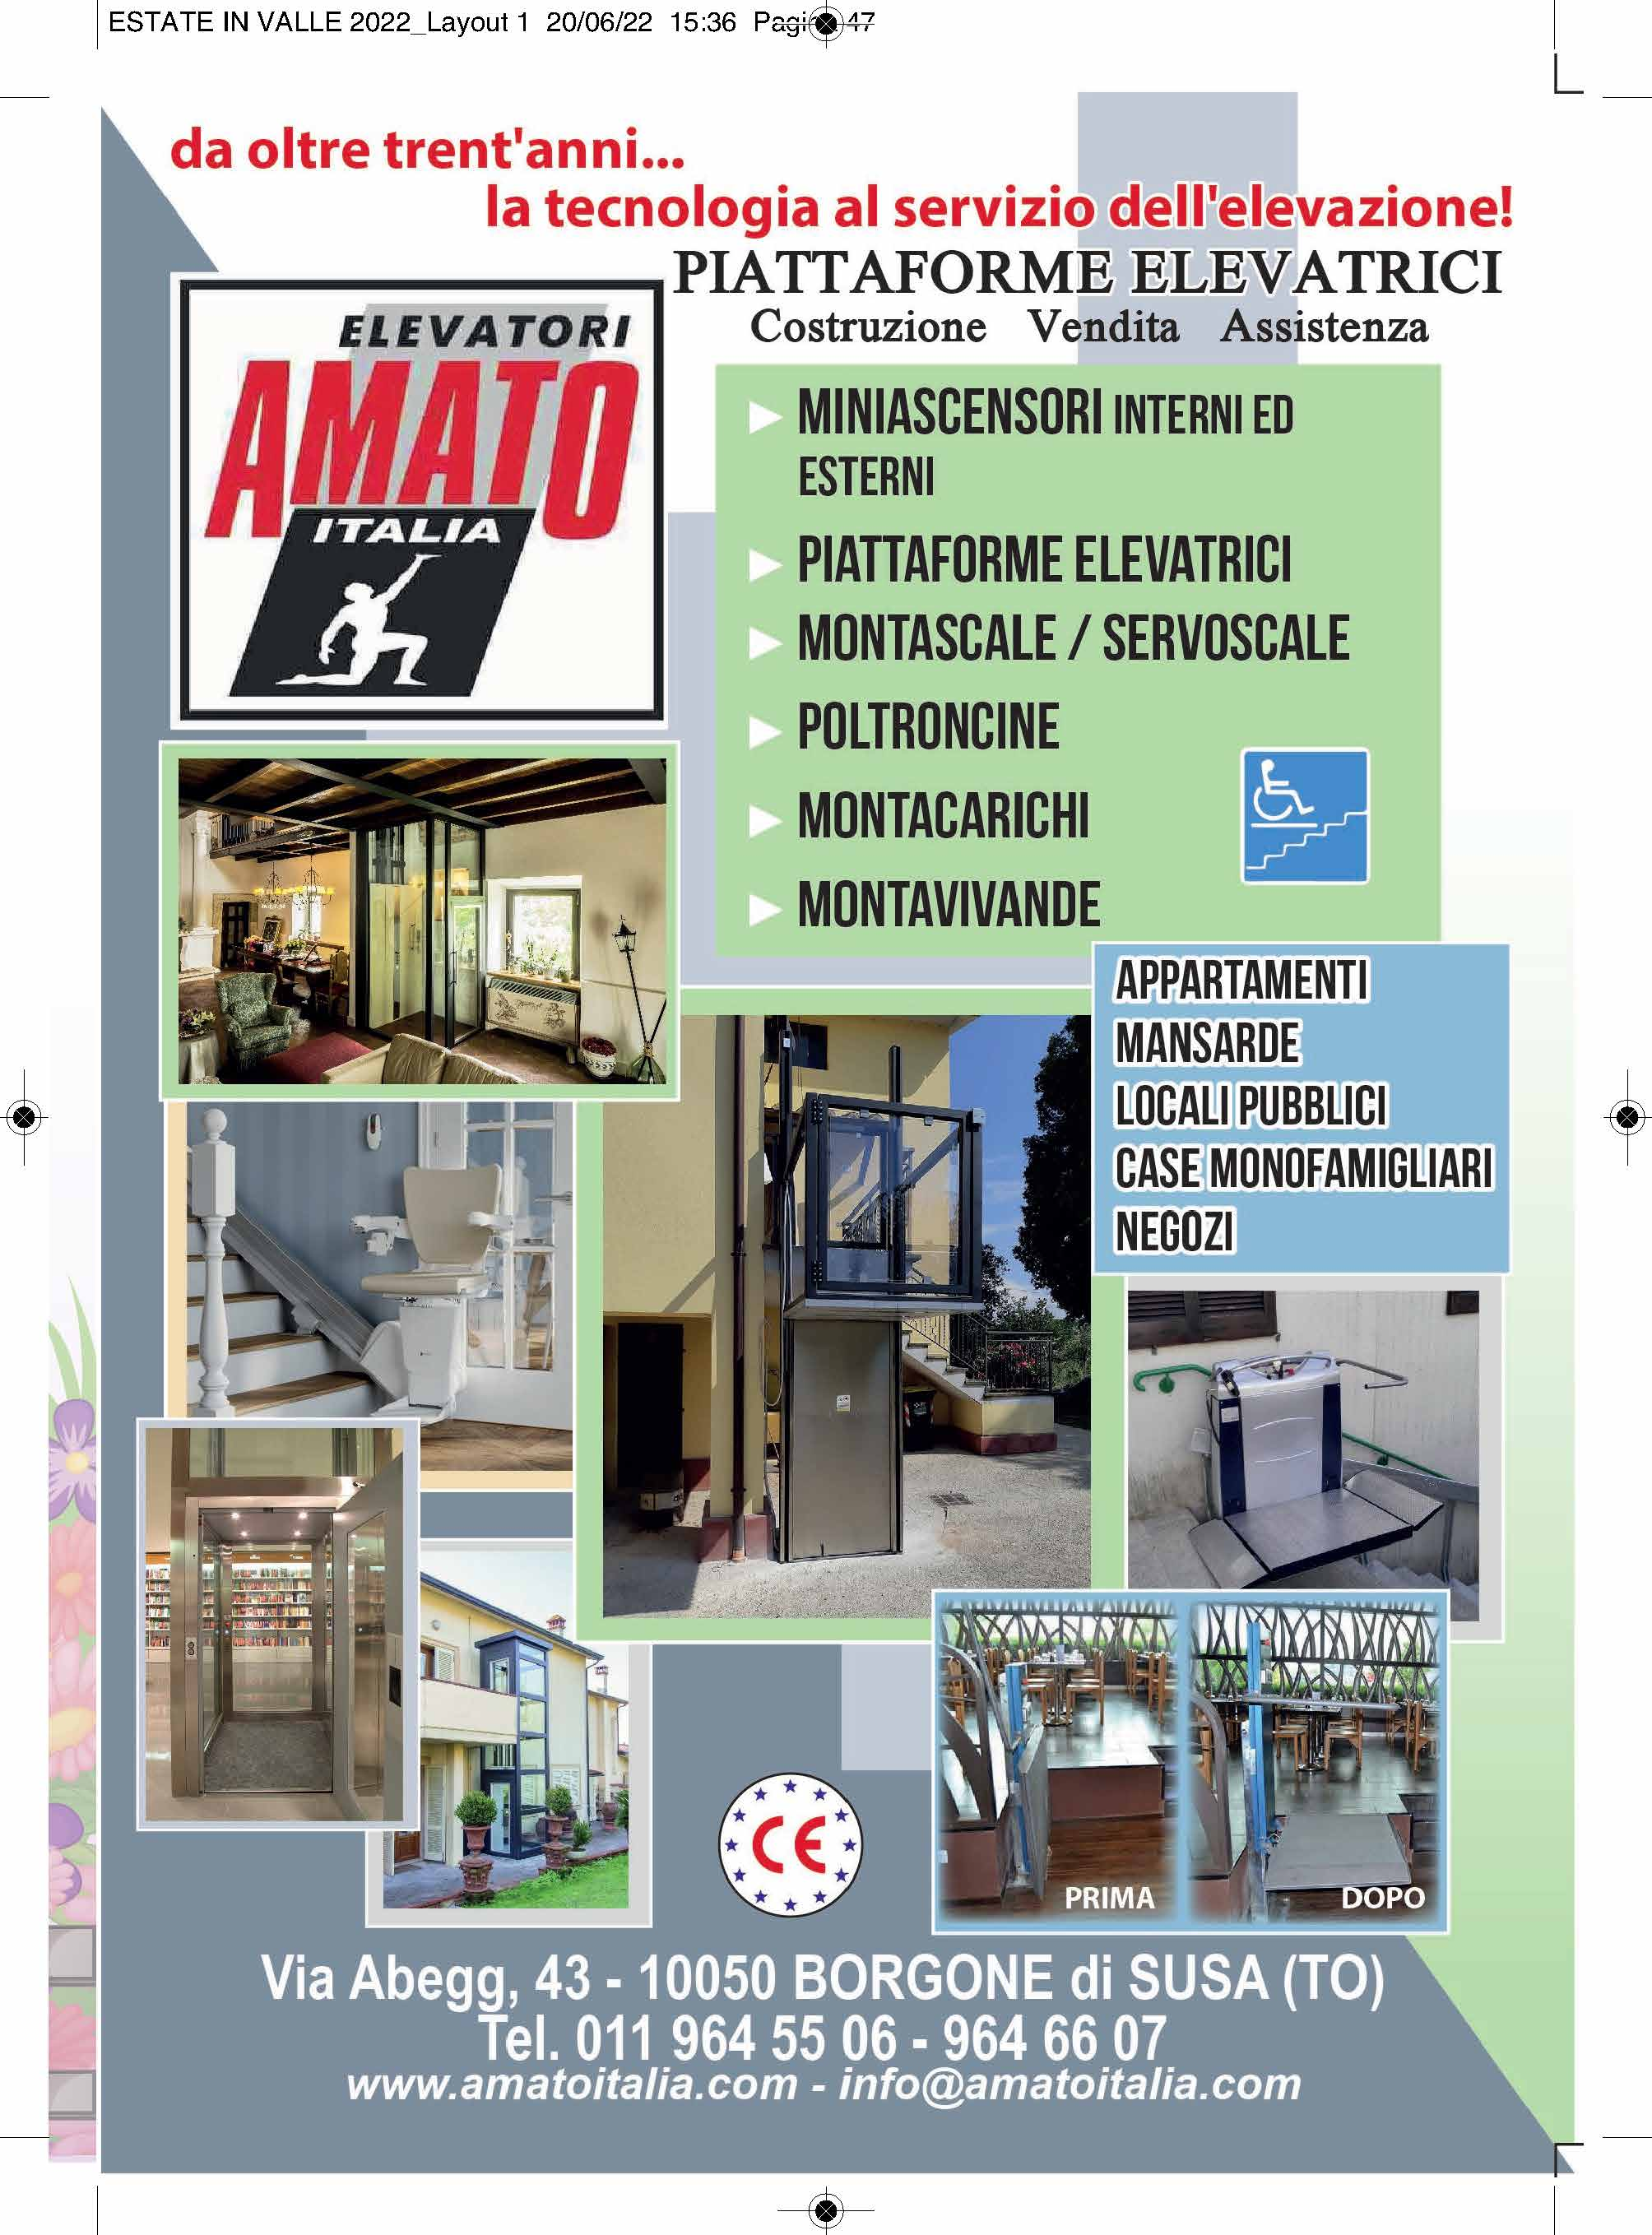 vallinvetrina.it